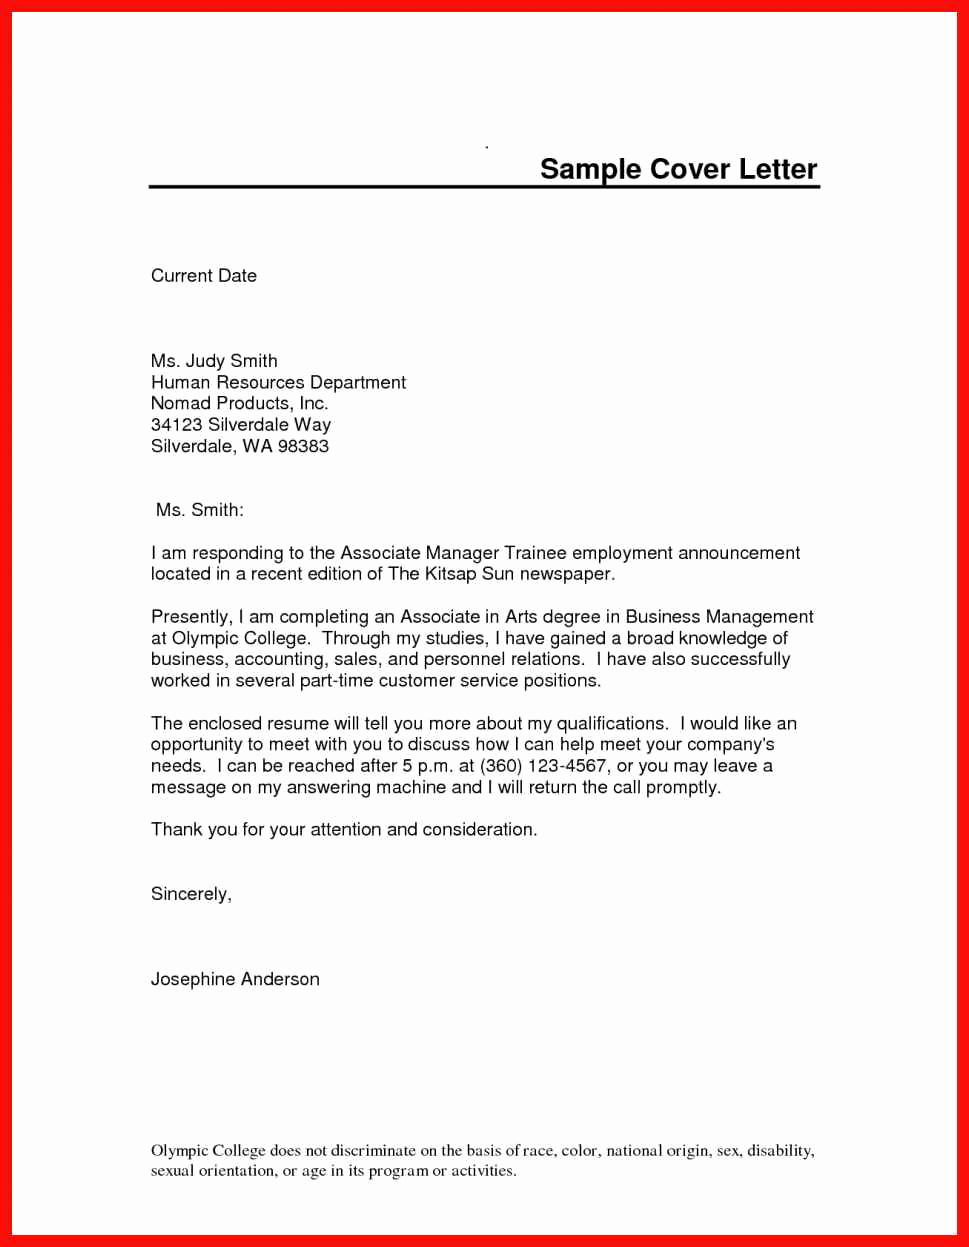 Microsoft Cover Letter Template Beautiful Cover Sheet Template Word